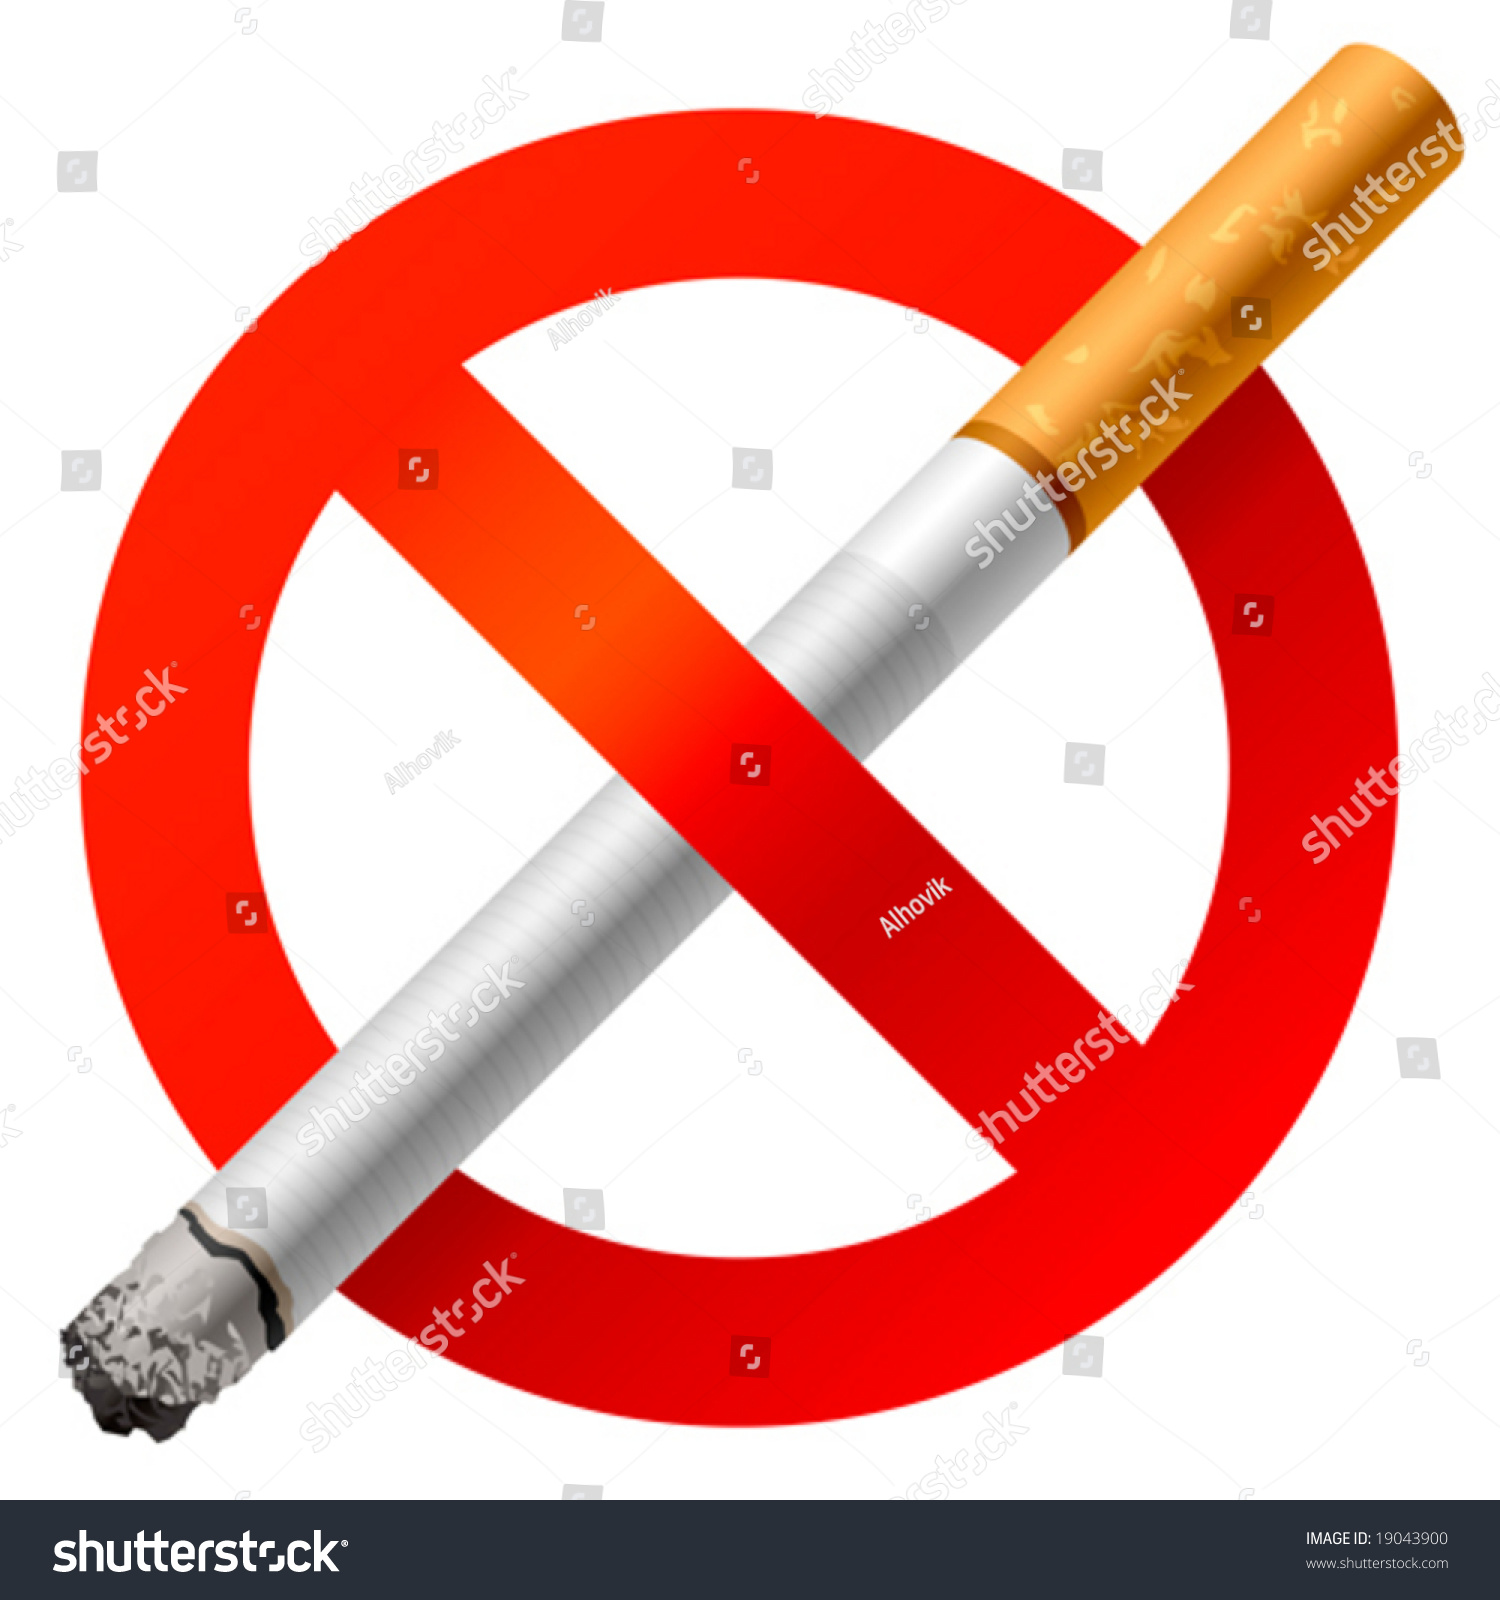 No Smoking Sign Vector Stock Vector 19043900 - Shutterstock